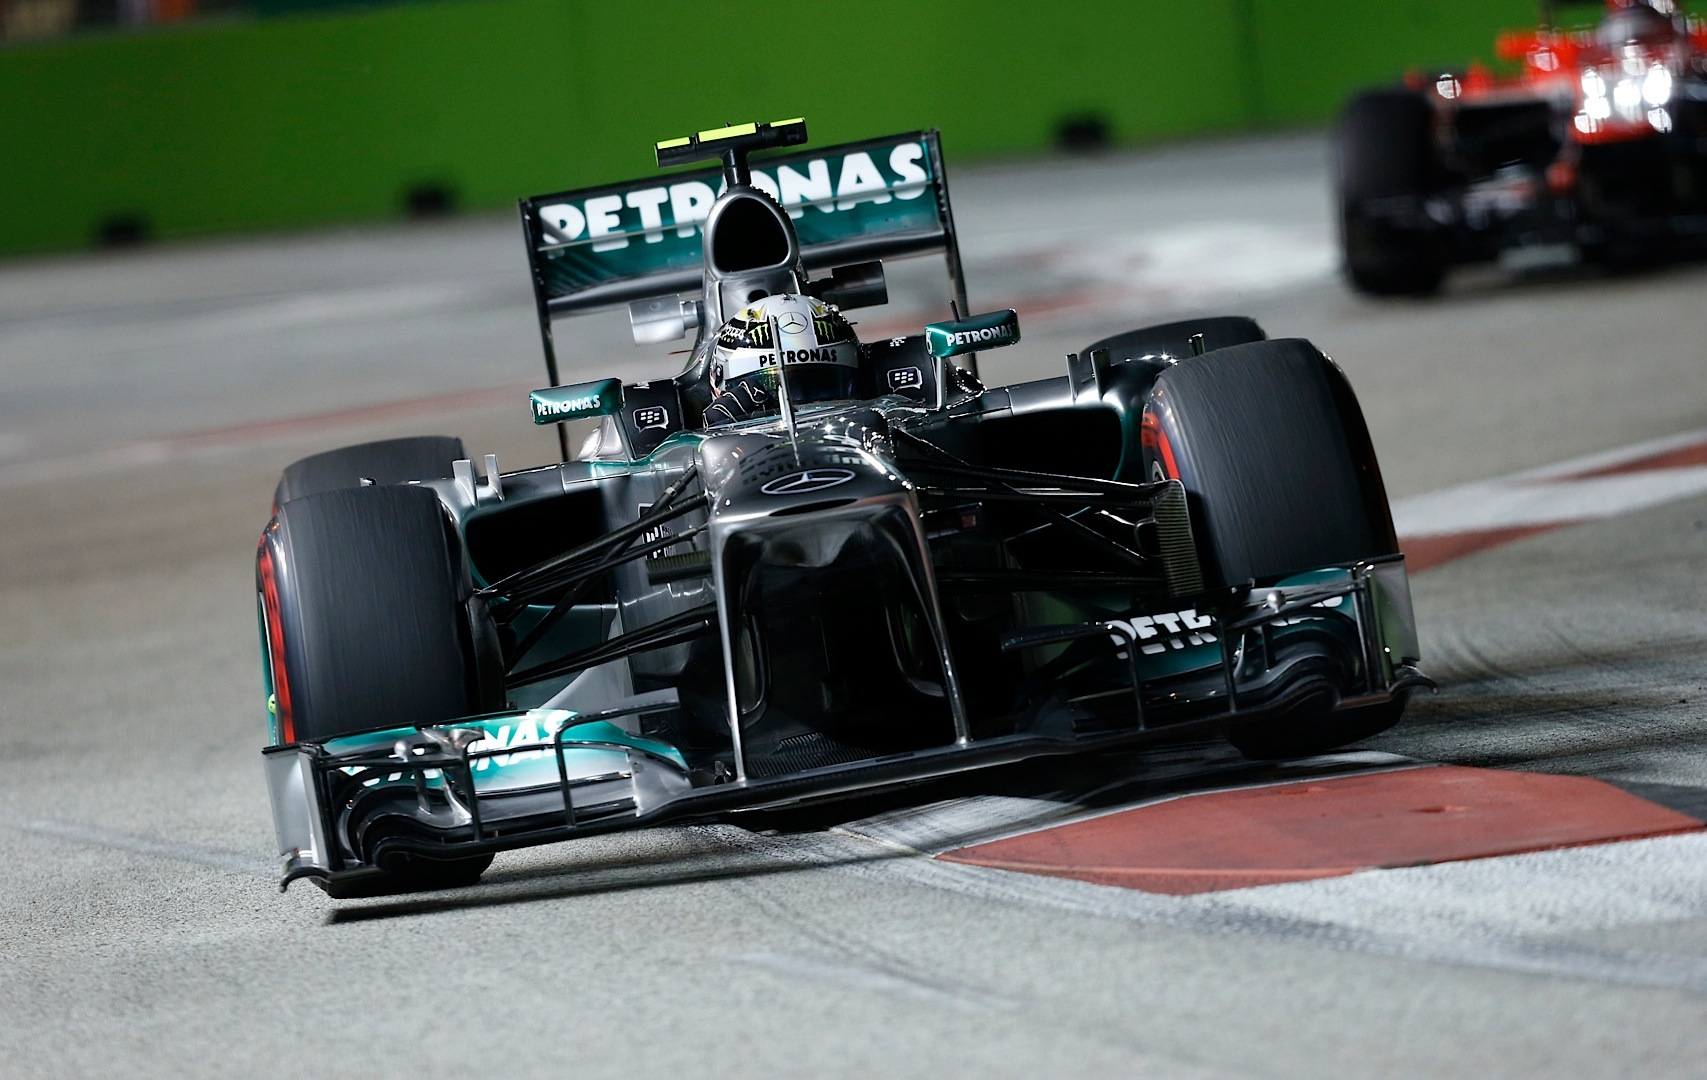 F1 Grand Prix Race Mercedes-amg Petronas Previews The 2013 Korean Grand Prix